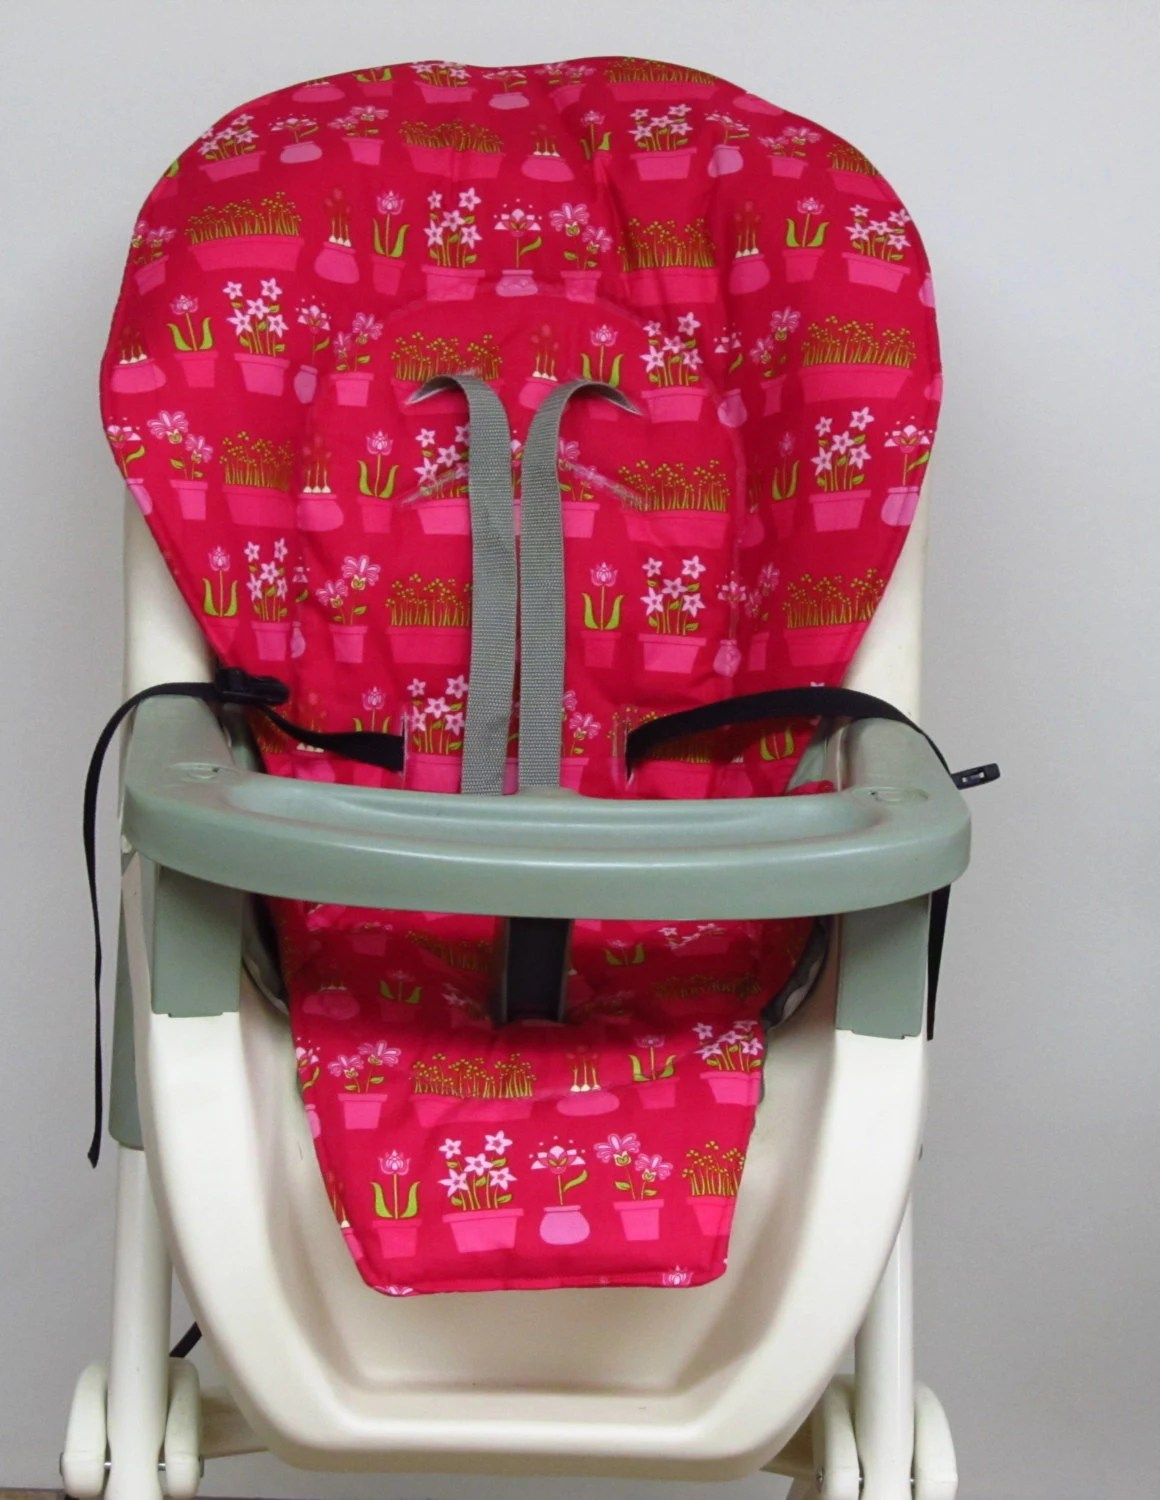 stokke high chair cushion sewing pattern folding picnic chairs b q graco cover pad replacement hot pink flower pot